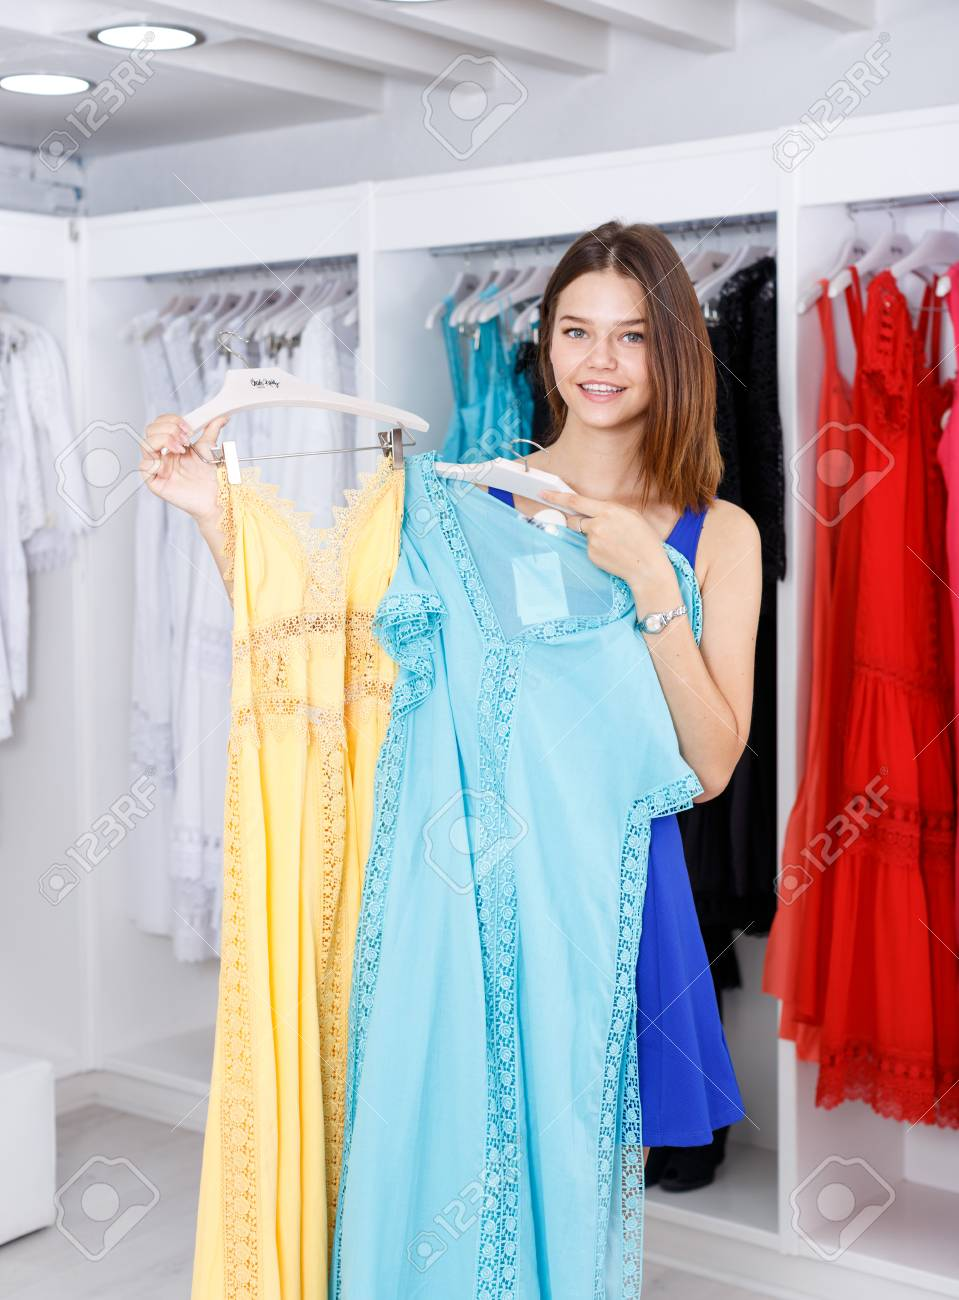 ccec63a7f3 Young cheerful woman shopping in clothing boutique Stock Photo - 113777783